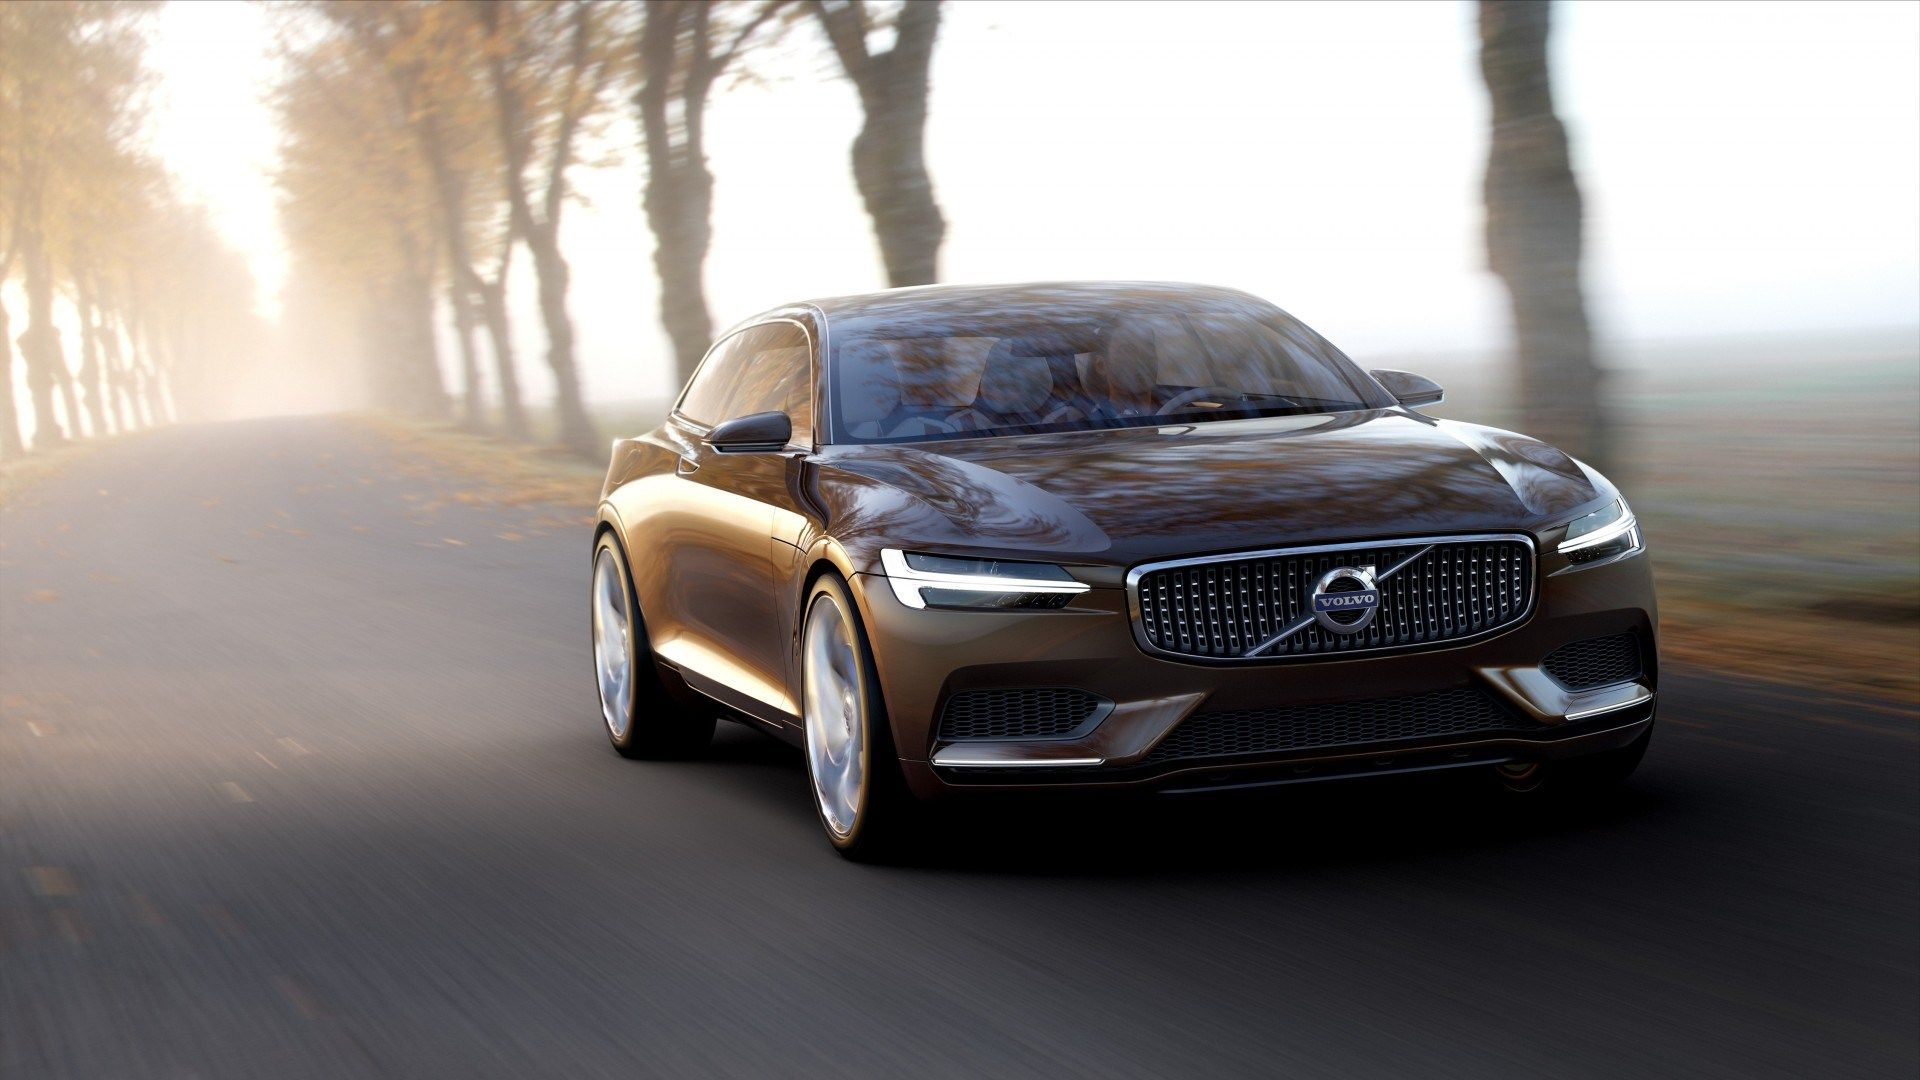 Concept car magazine cool car wallpapers - The New Volvo Volvo S New Range Topping Car And Replacement For The Will Debut At The 2016 Detroit Motor Show In January